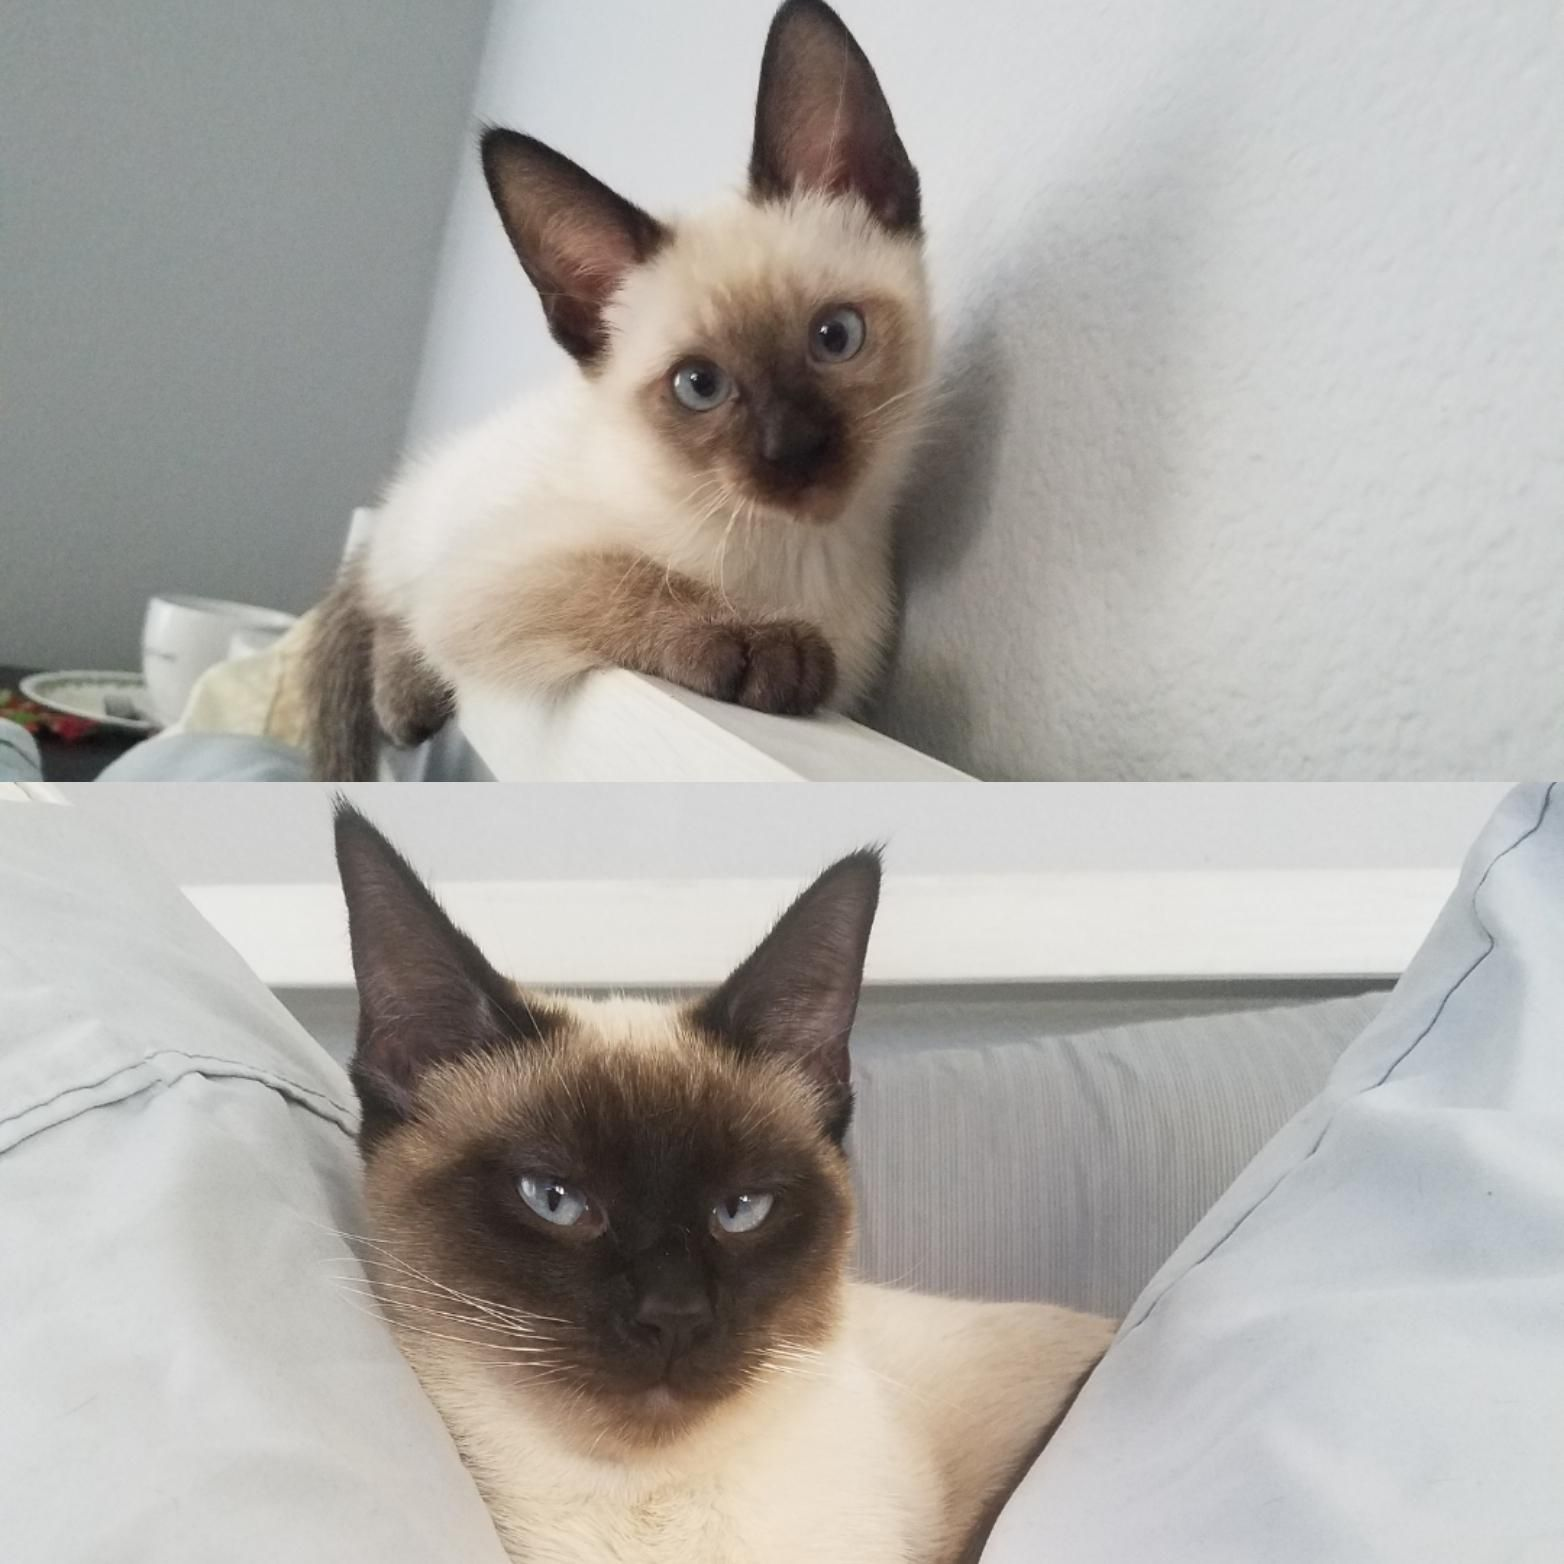 My Siamese Kitten At 3 Months Vs 11 Months The Top Picture Makes Her Look Eyebrowless Music Indieartist Chicago Siamese Kittens Siamese Cats Kittens